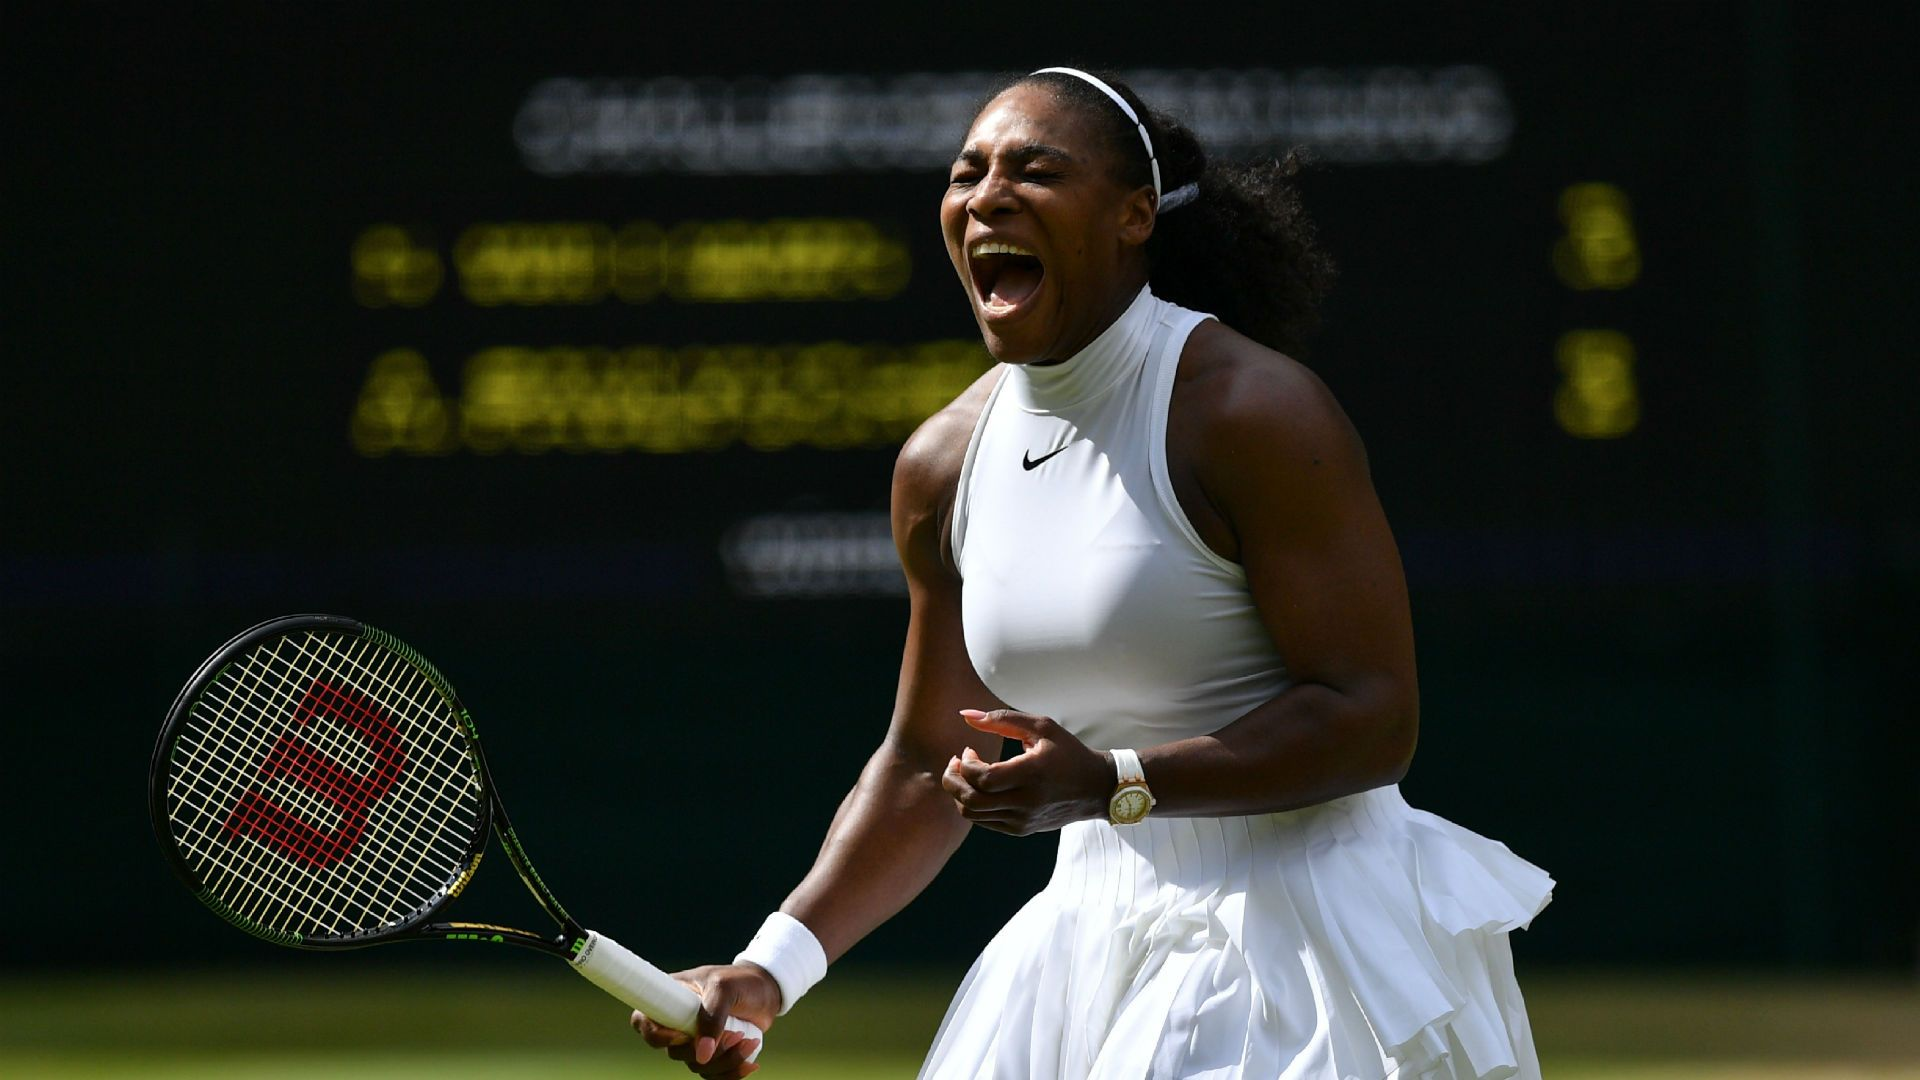 Wimbledon 2016: Serena Williams rolls into semifinals | Tennis ...